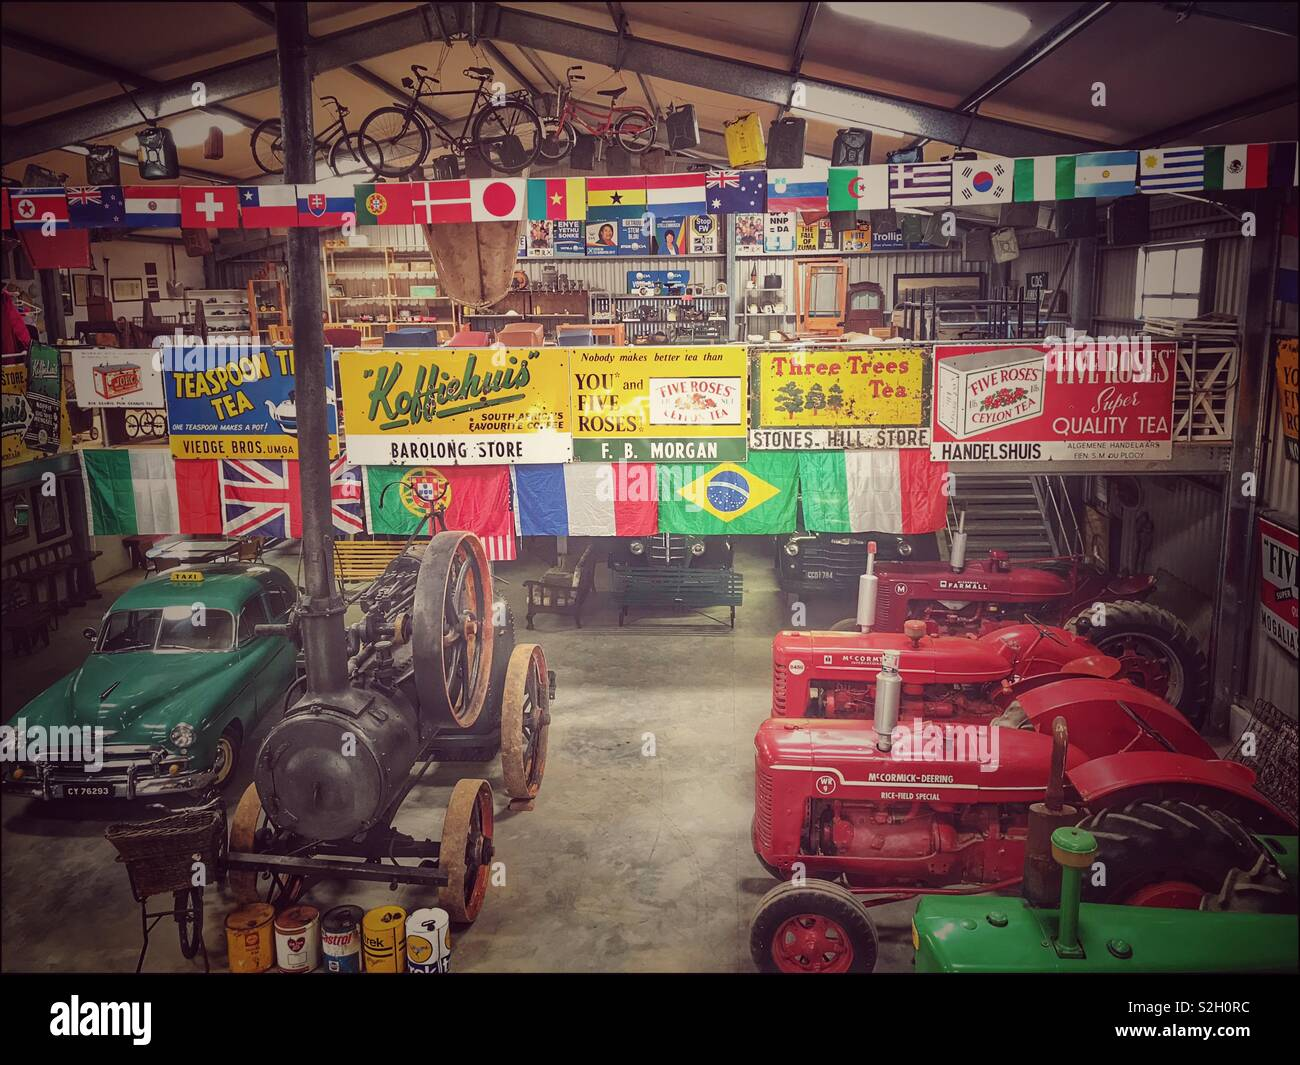 Variety of collectibles and antiques in Toeka Stoor, Paarl, South Africa. - Stock Image